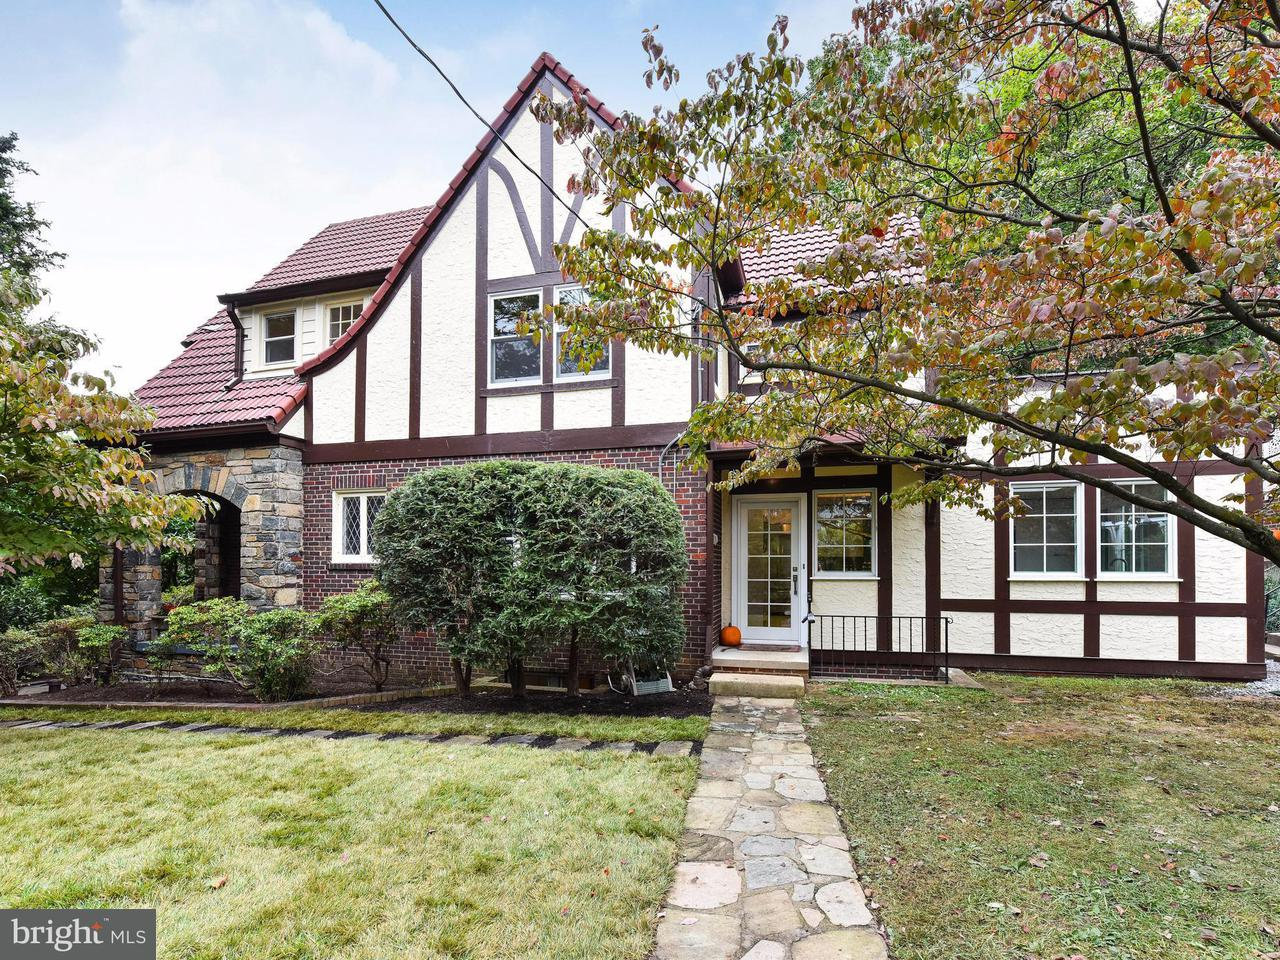 Single Family Home for Sale at 3314 PORTER ST NW 3314 PORTER ST NW Washington, District Of Columbia 20008 United States